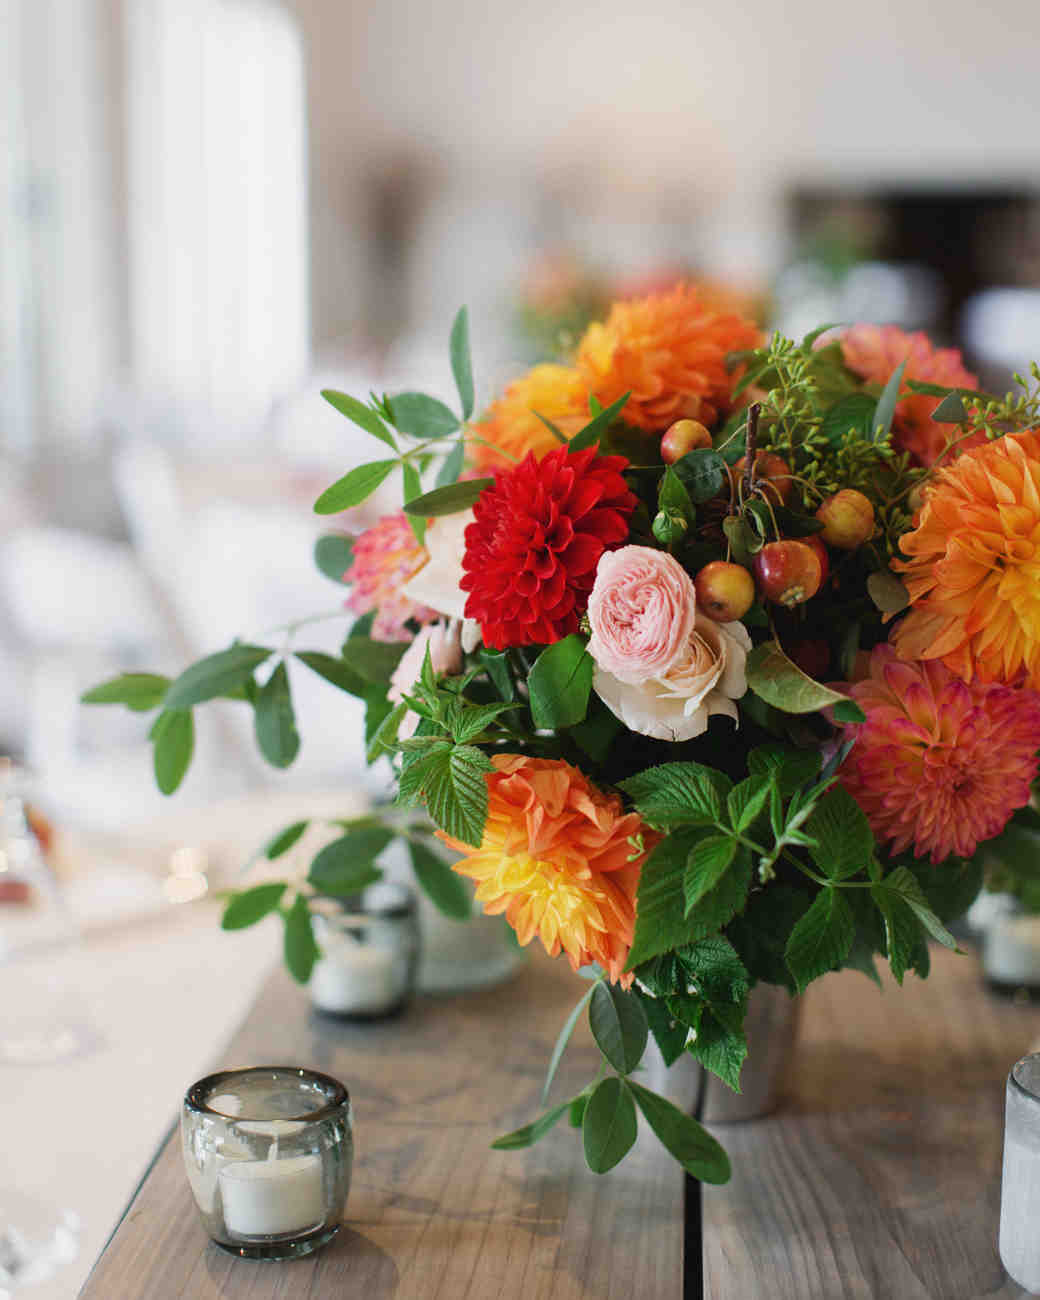 DIY Farm-Sourced Centerpieces